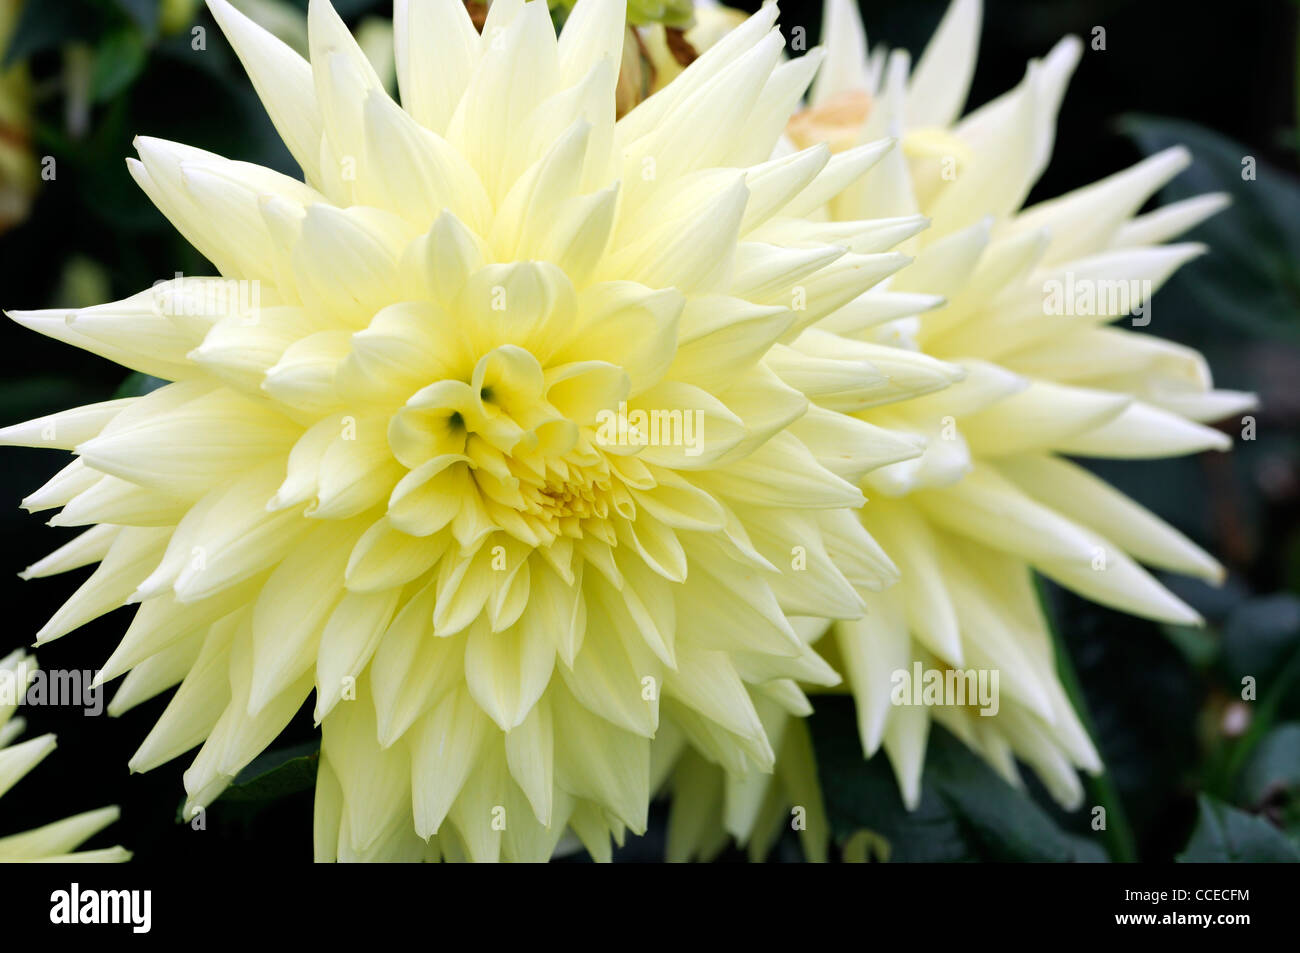 Dahlia janal amy yellow flower bloom blossom closeup plant portraits dahlia janal amy yellow flower bloom blossom closeup plant portraits flowers flowering perennials blooms blossoms semi cactus izmirmasajfo